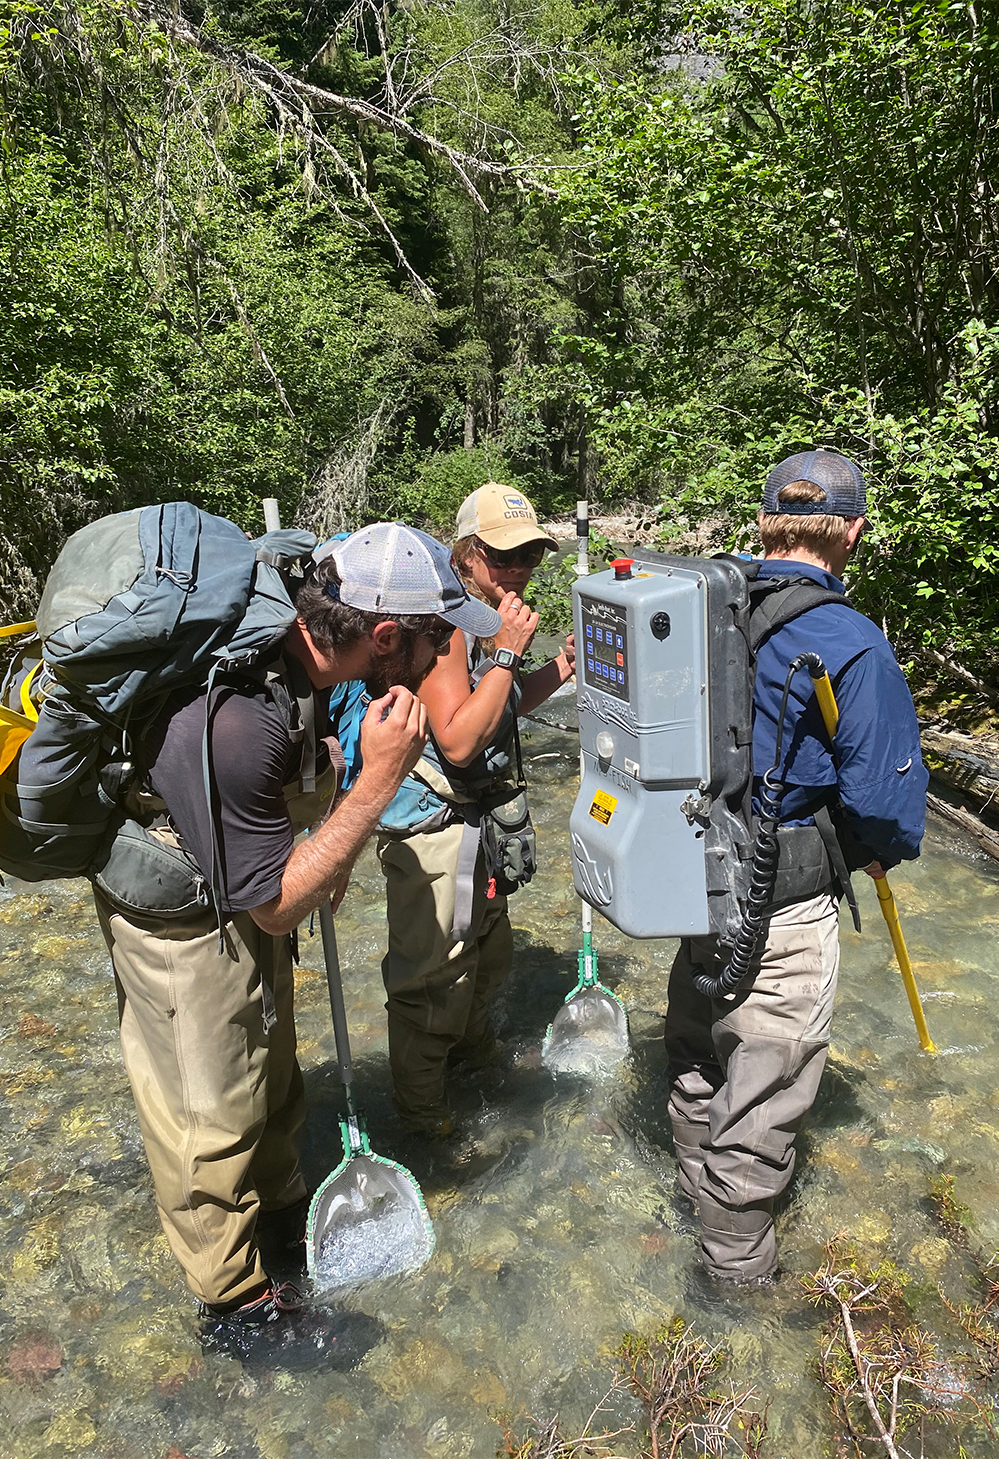 A team of scientists inspect a backpack on a crew member while wading in a river